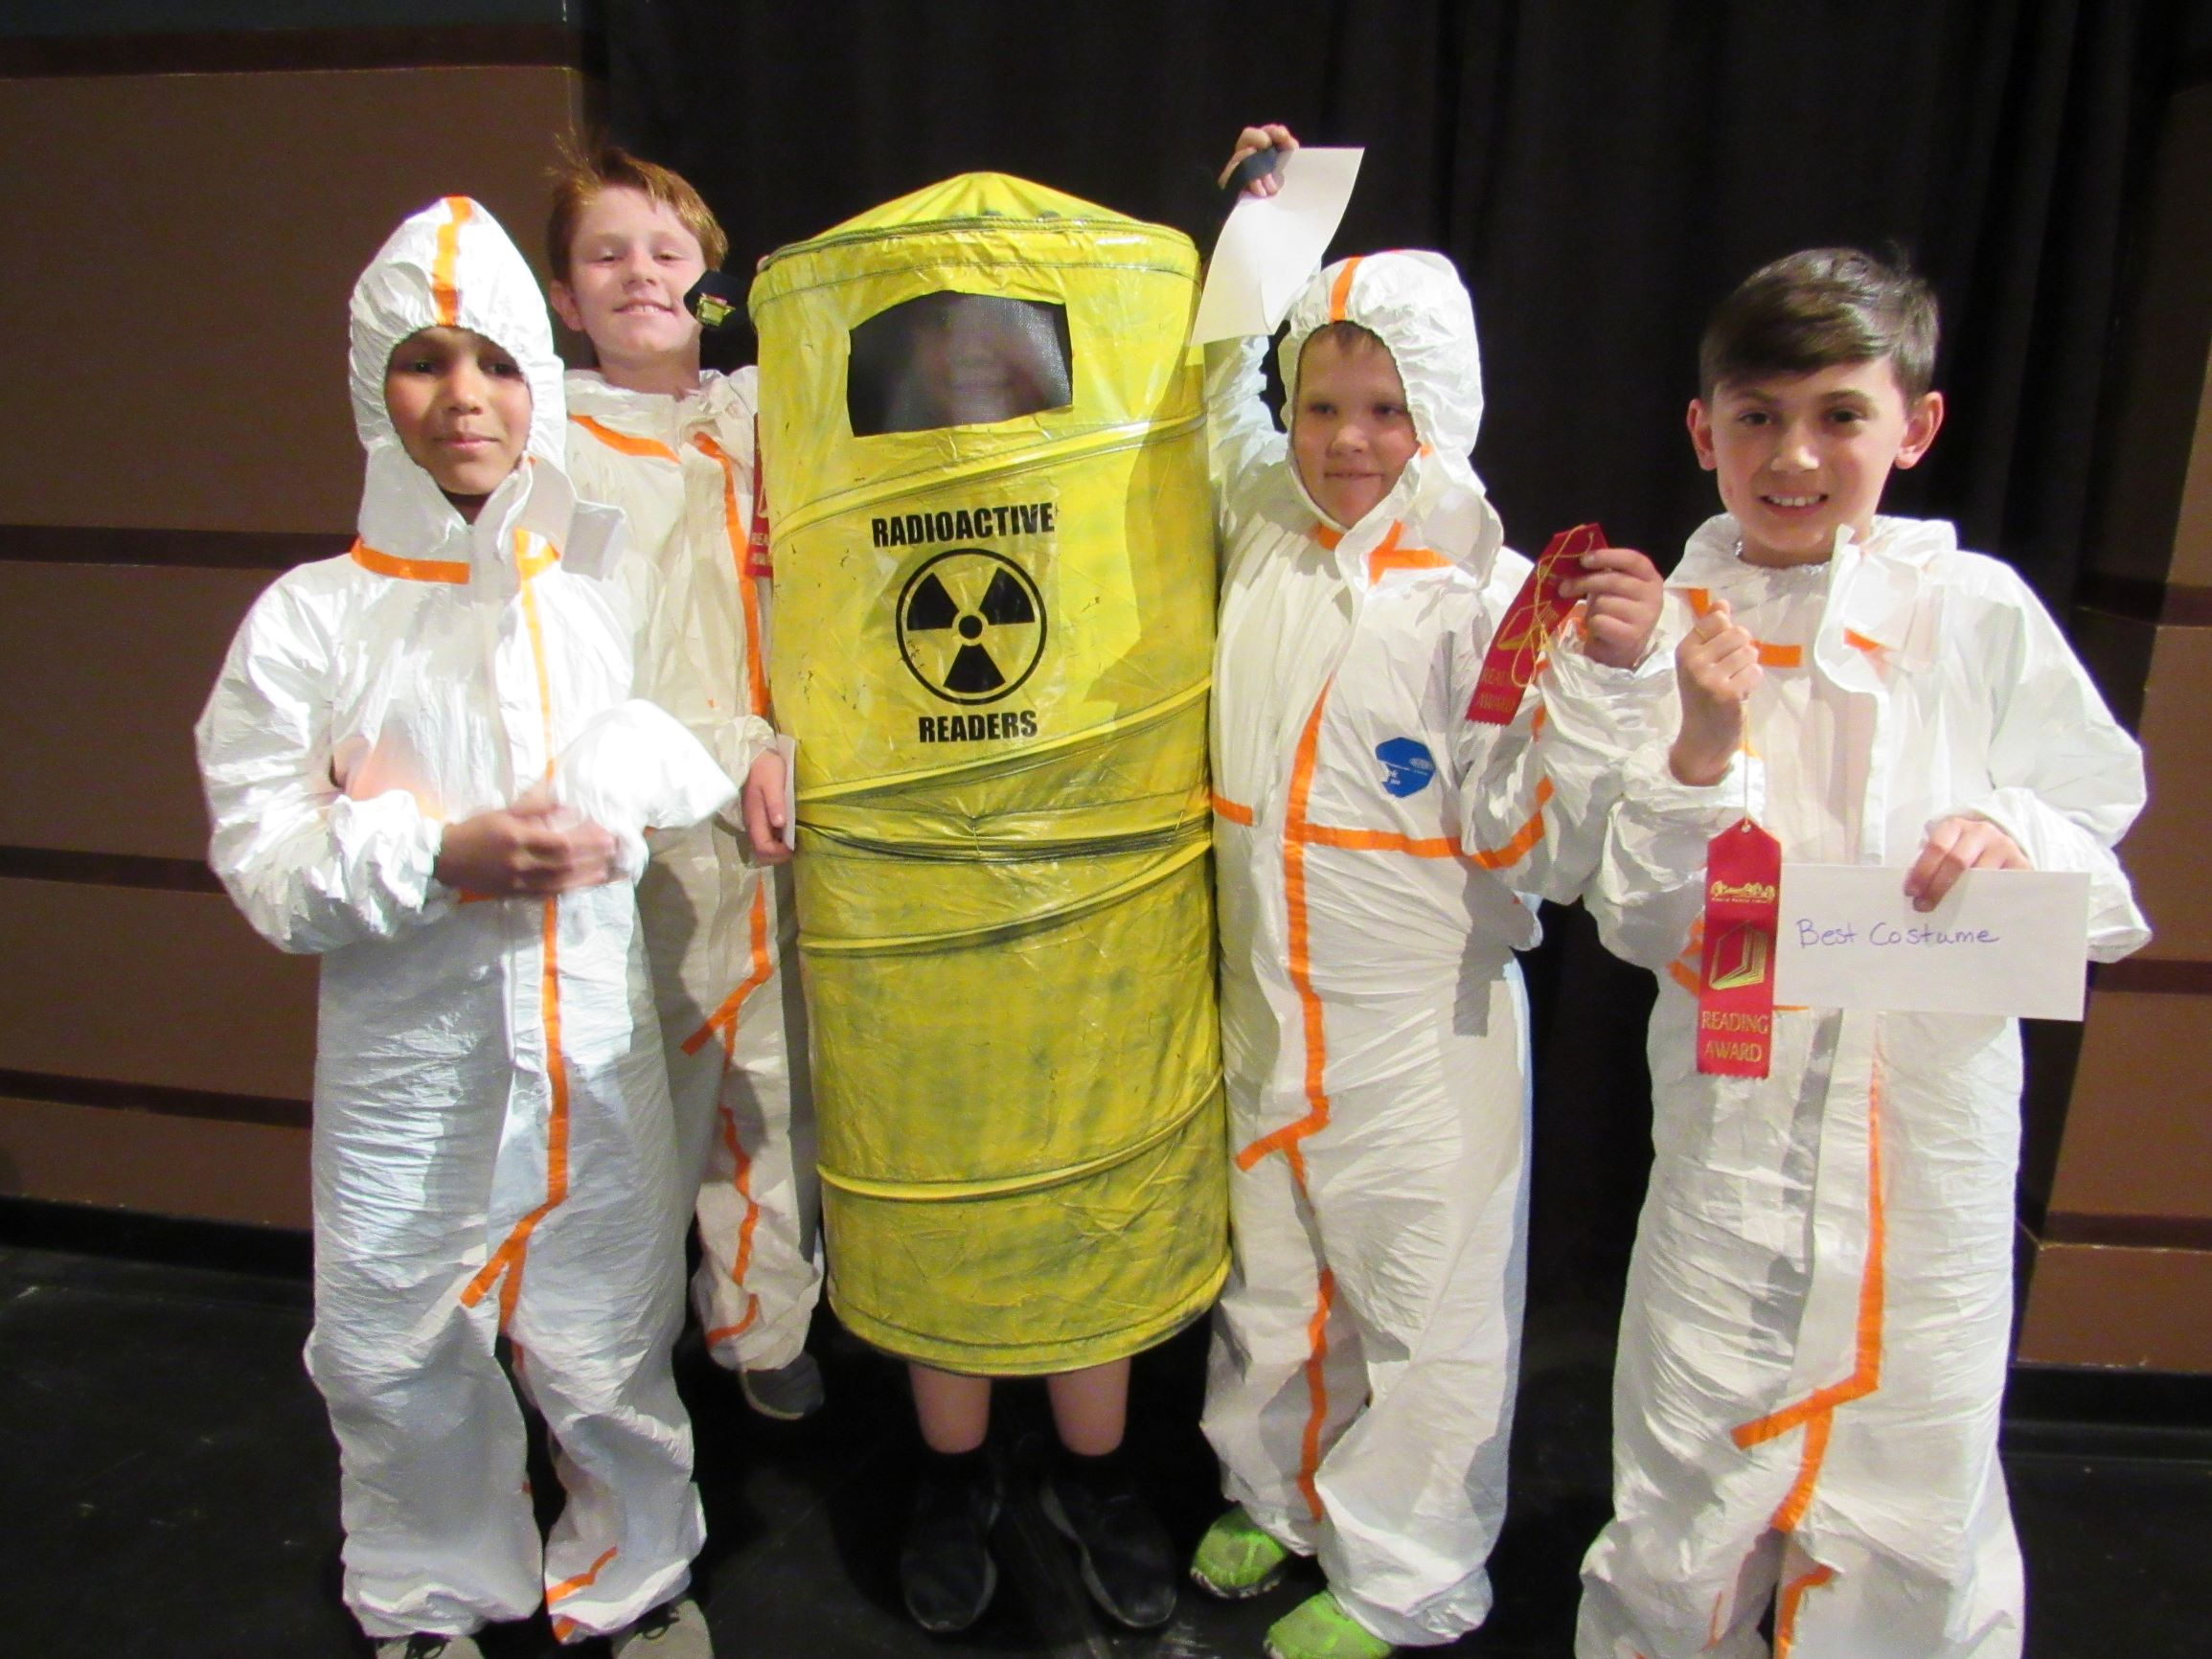 Best Costume Radioactive Readers smaller